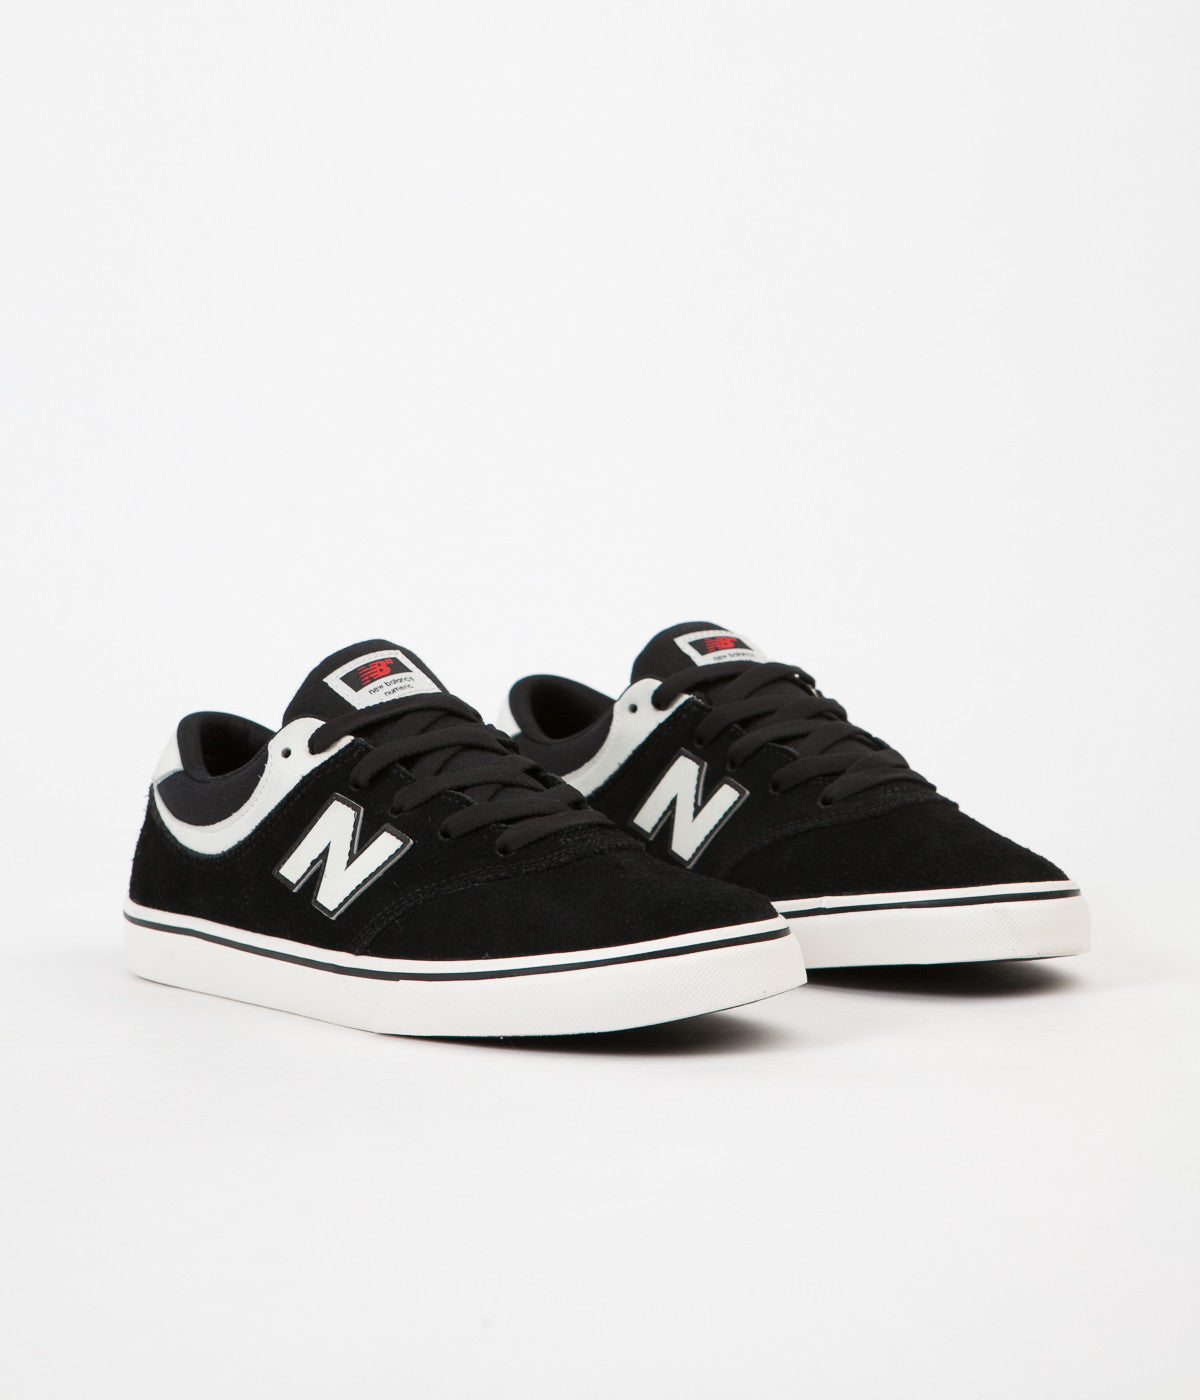 New Balance Numeric Quincy 254 Shoes - Black / Sea Salt